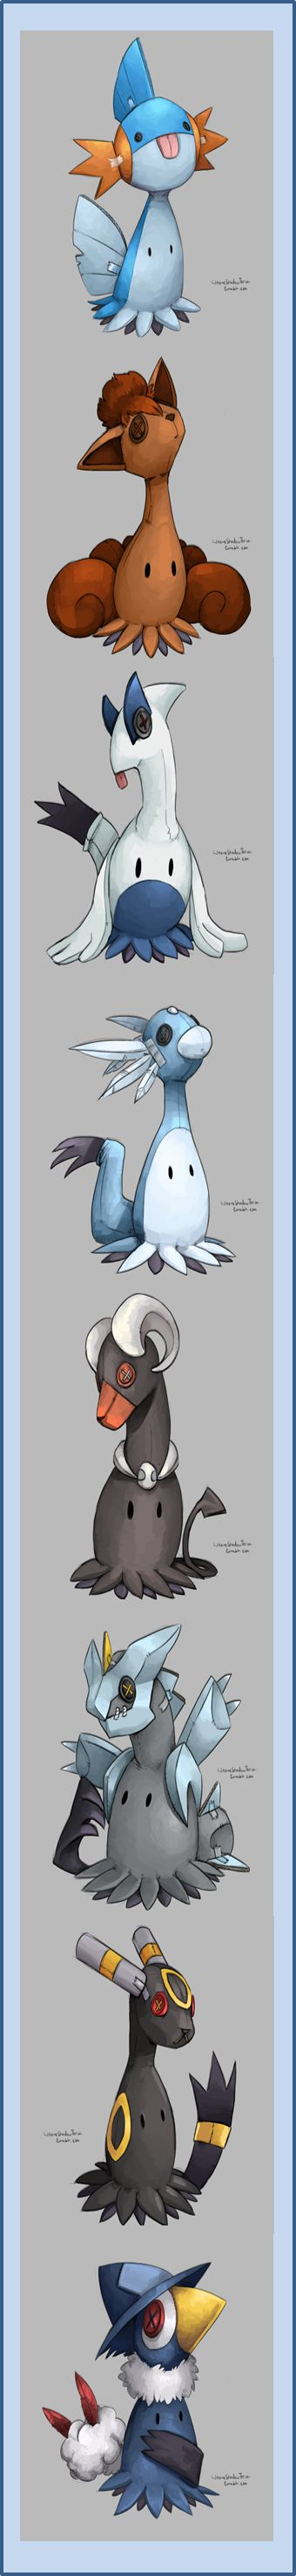 Because there aren't enough cute Pokemon on the internet!  These art prints by WhereShadowsThrive (Jiro's Bizarre Adventure), answer the question of what Mimikyu would look like if it didn't only dress up as Pikachu.  Turns out the variants (Shiny Mimikyu?) are flipping adorable, so enjoy the Disguise Pokemon in full cosplay as Mudkip, Vulpix, Lugia, Dragonair, Houndoom, Kyurem, Umbreon and Honchkrow.  Don't see your favorite?  The artist takes commissions, so you can ask to have one made!